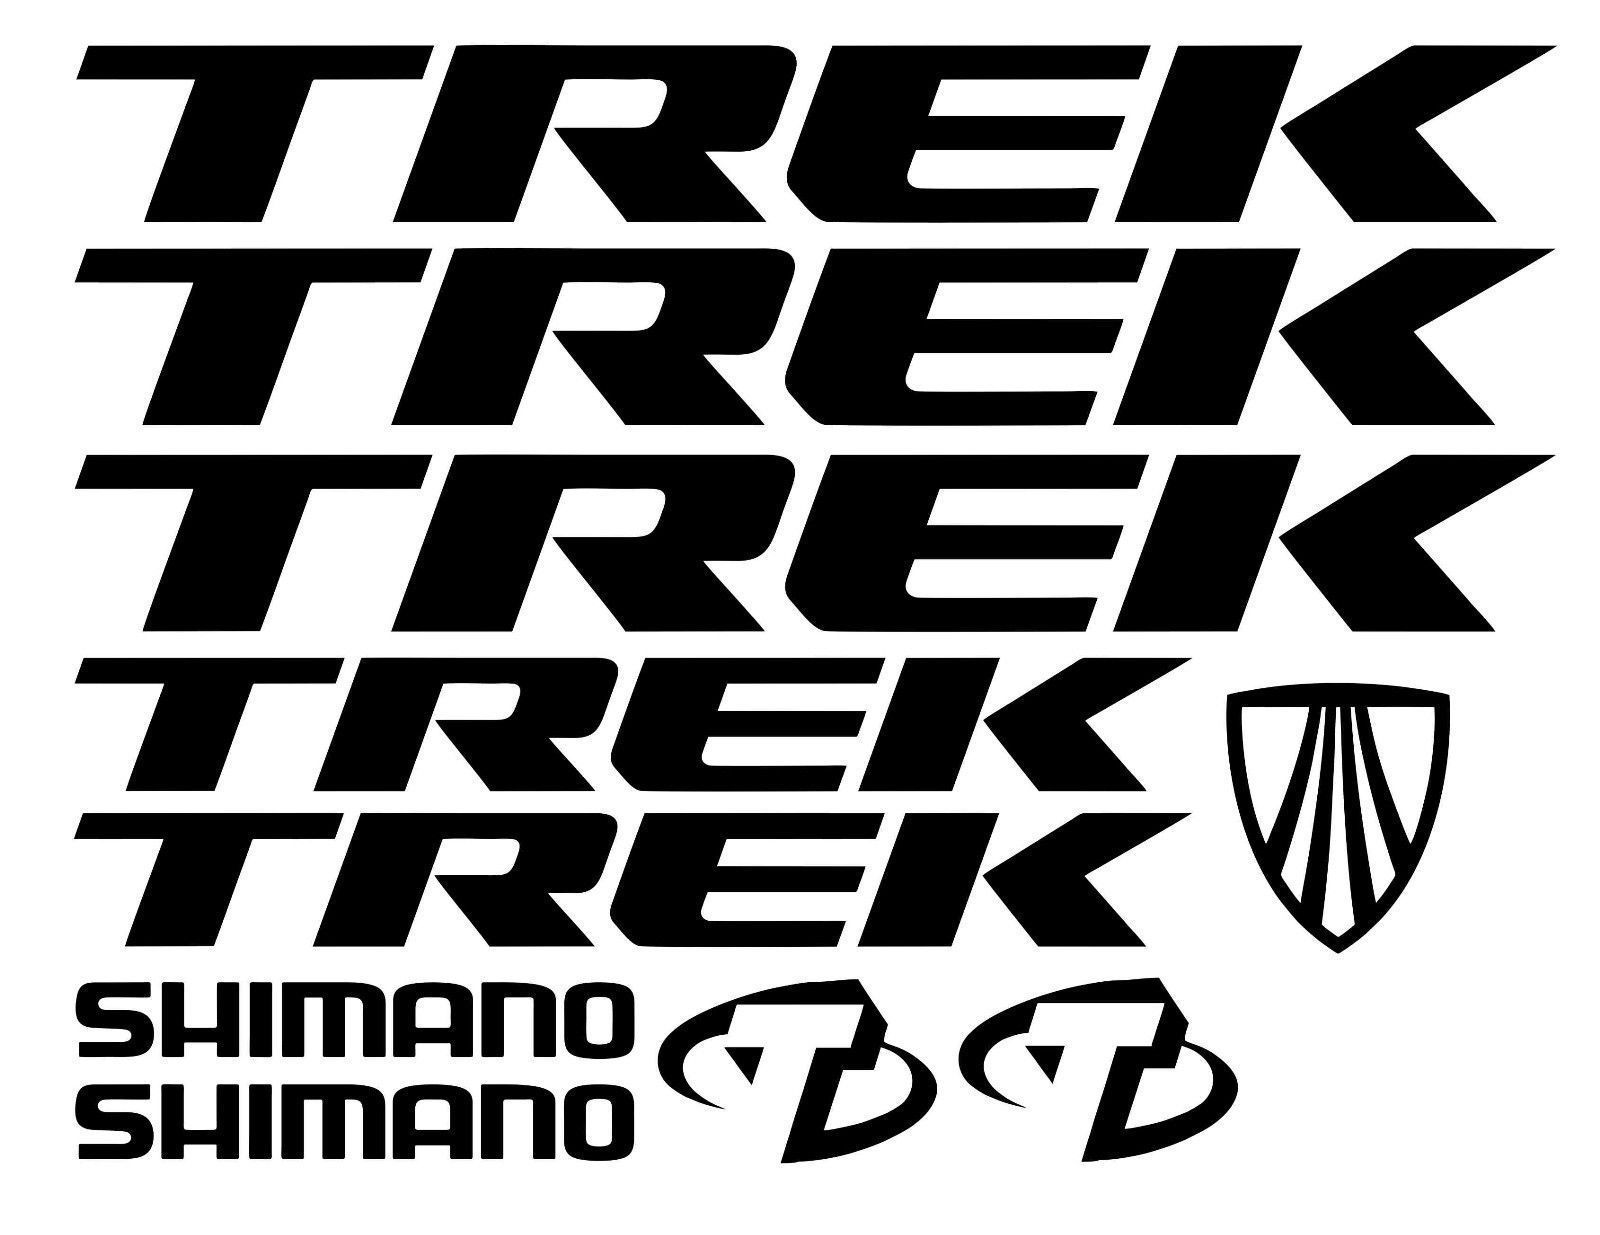 Trek Replacement Mountain Bike Frame Style Vinyl Stickers Decals